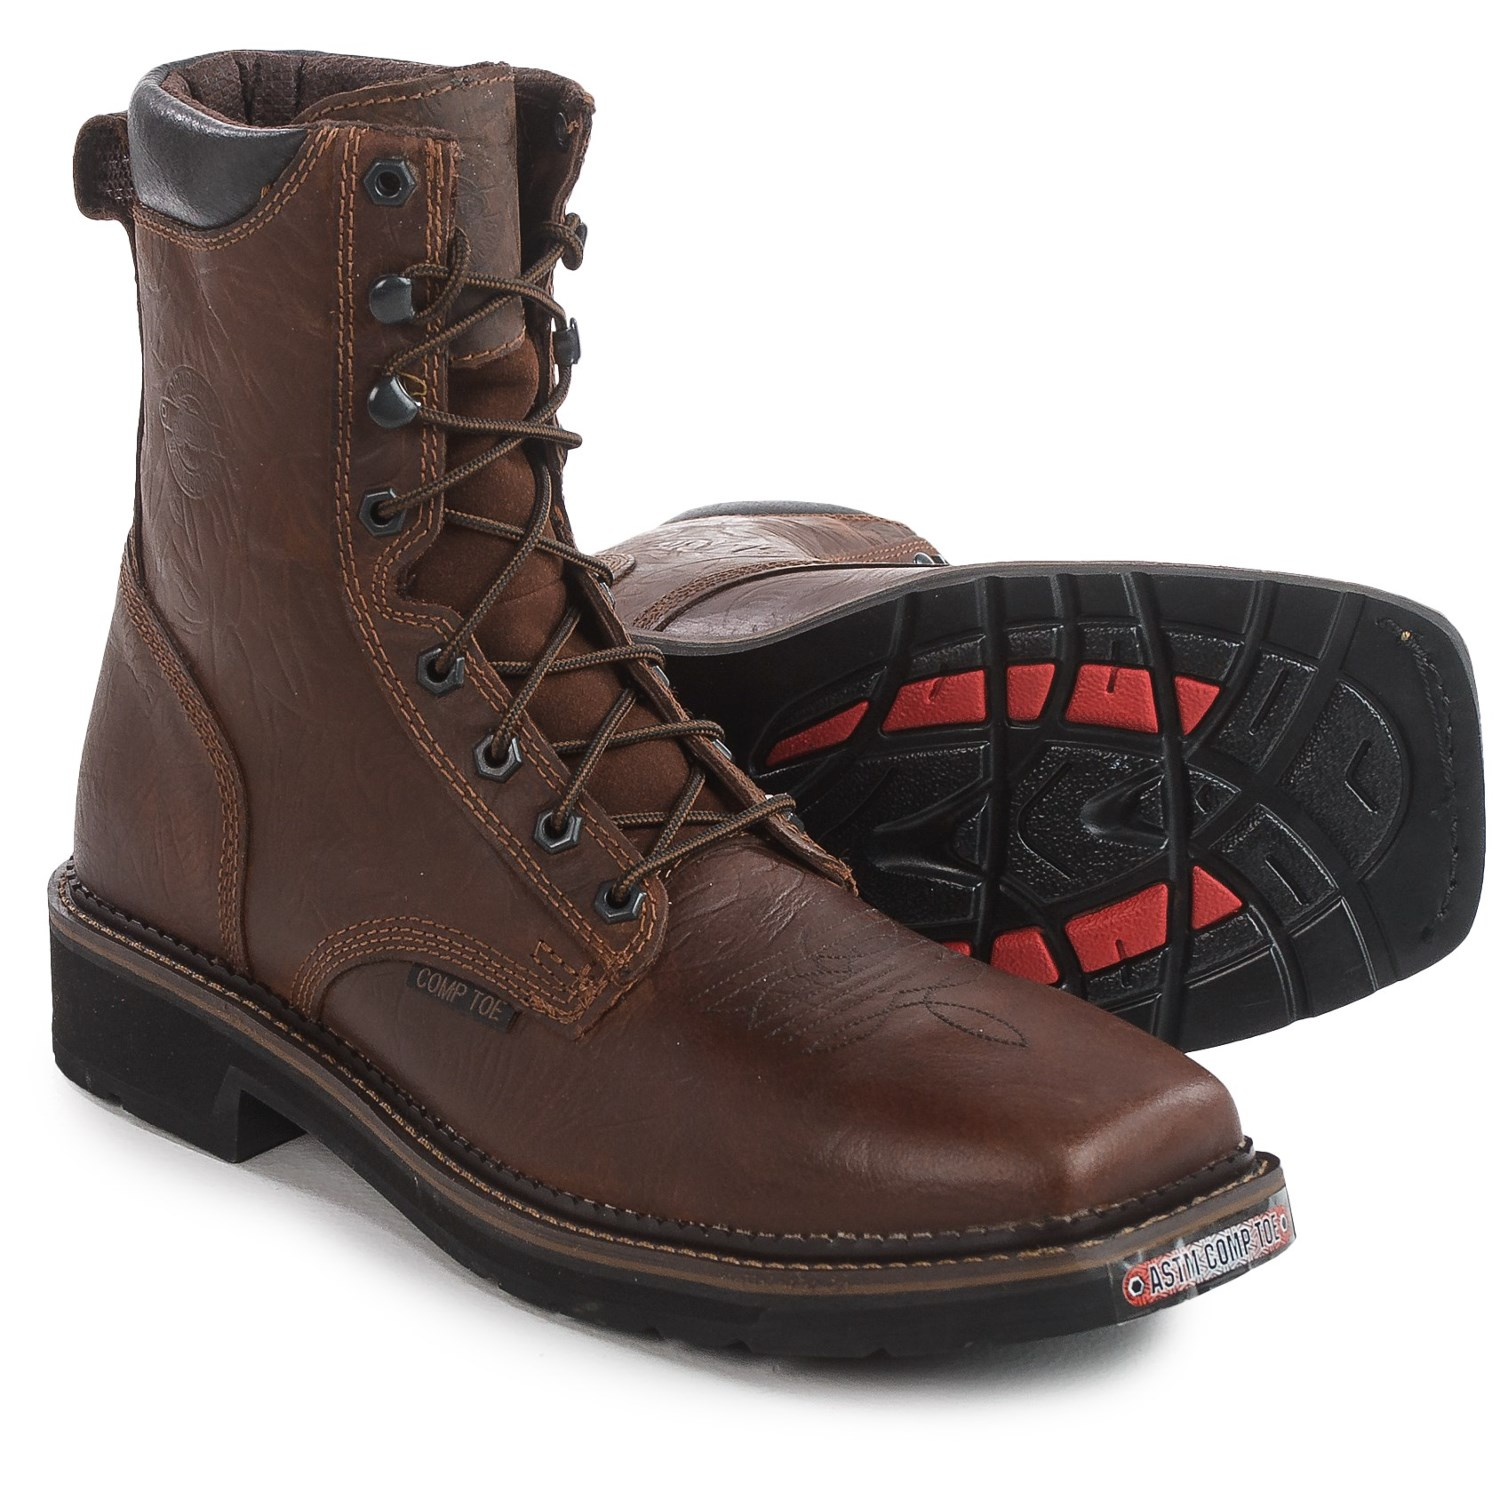 Justin Boots Lace-Up EH Work Boots (For Men) - Save 50%